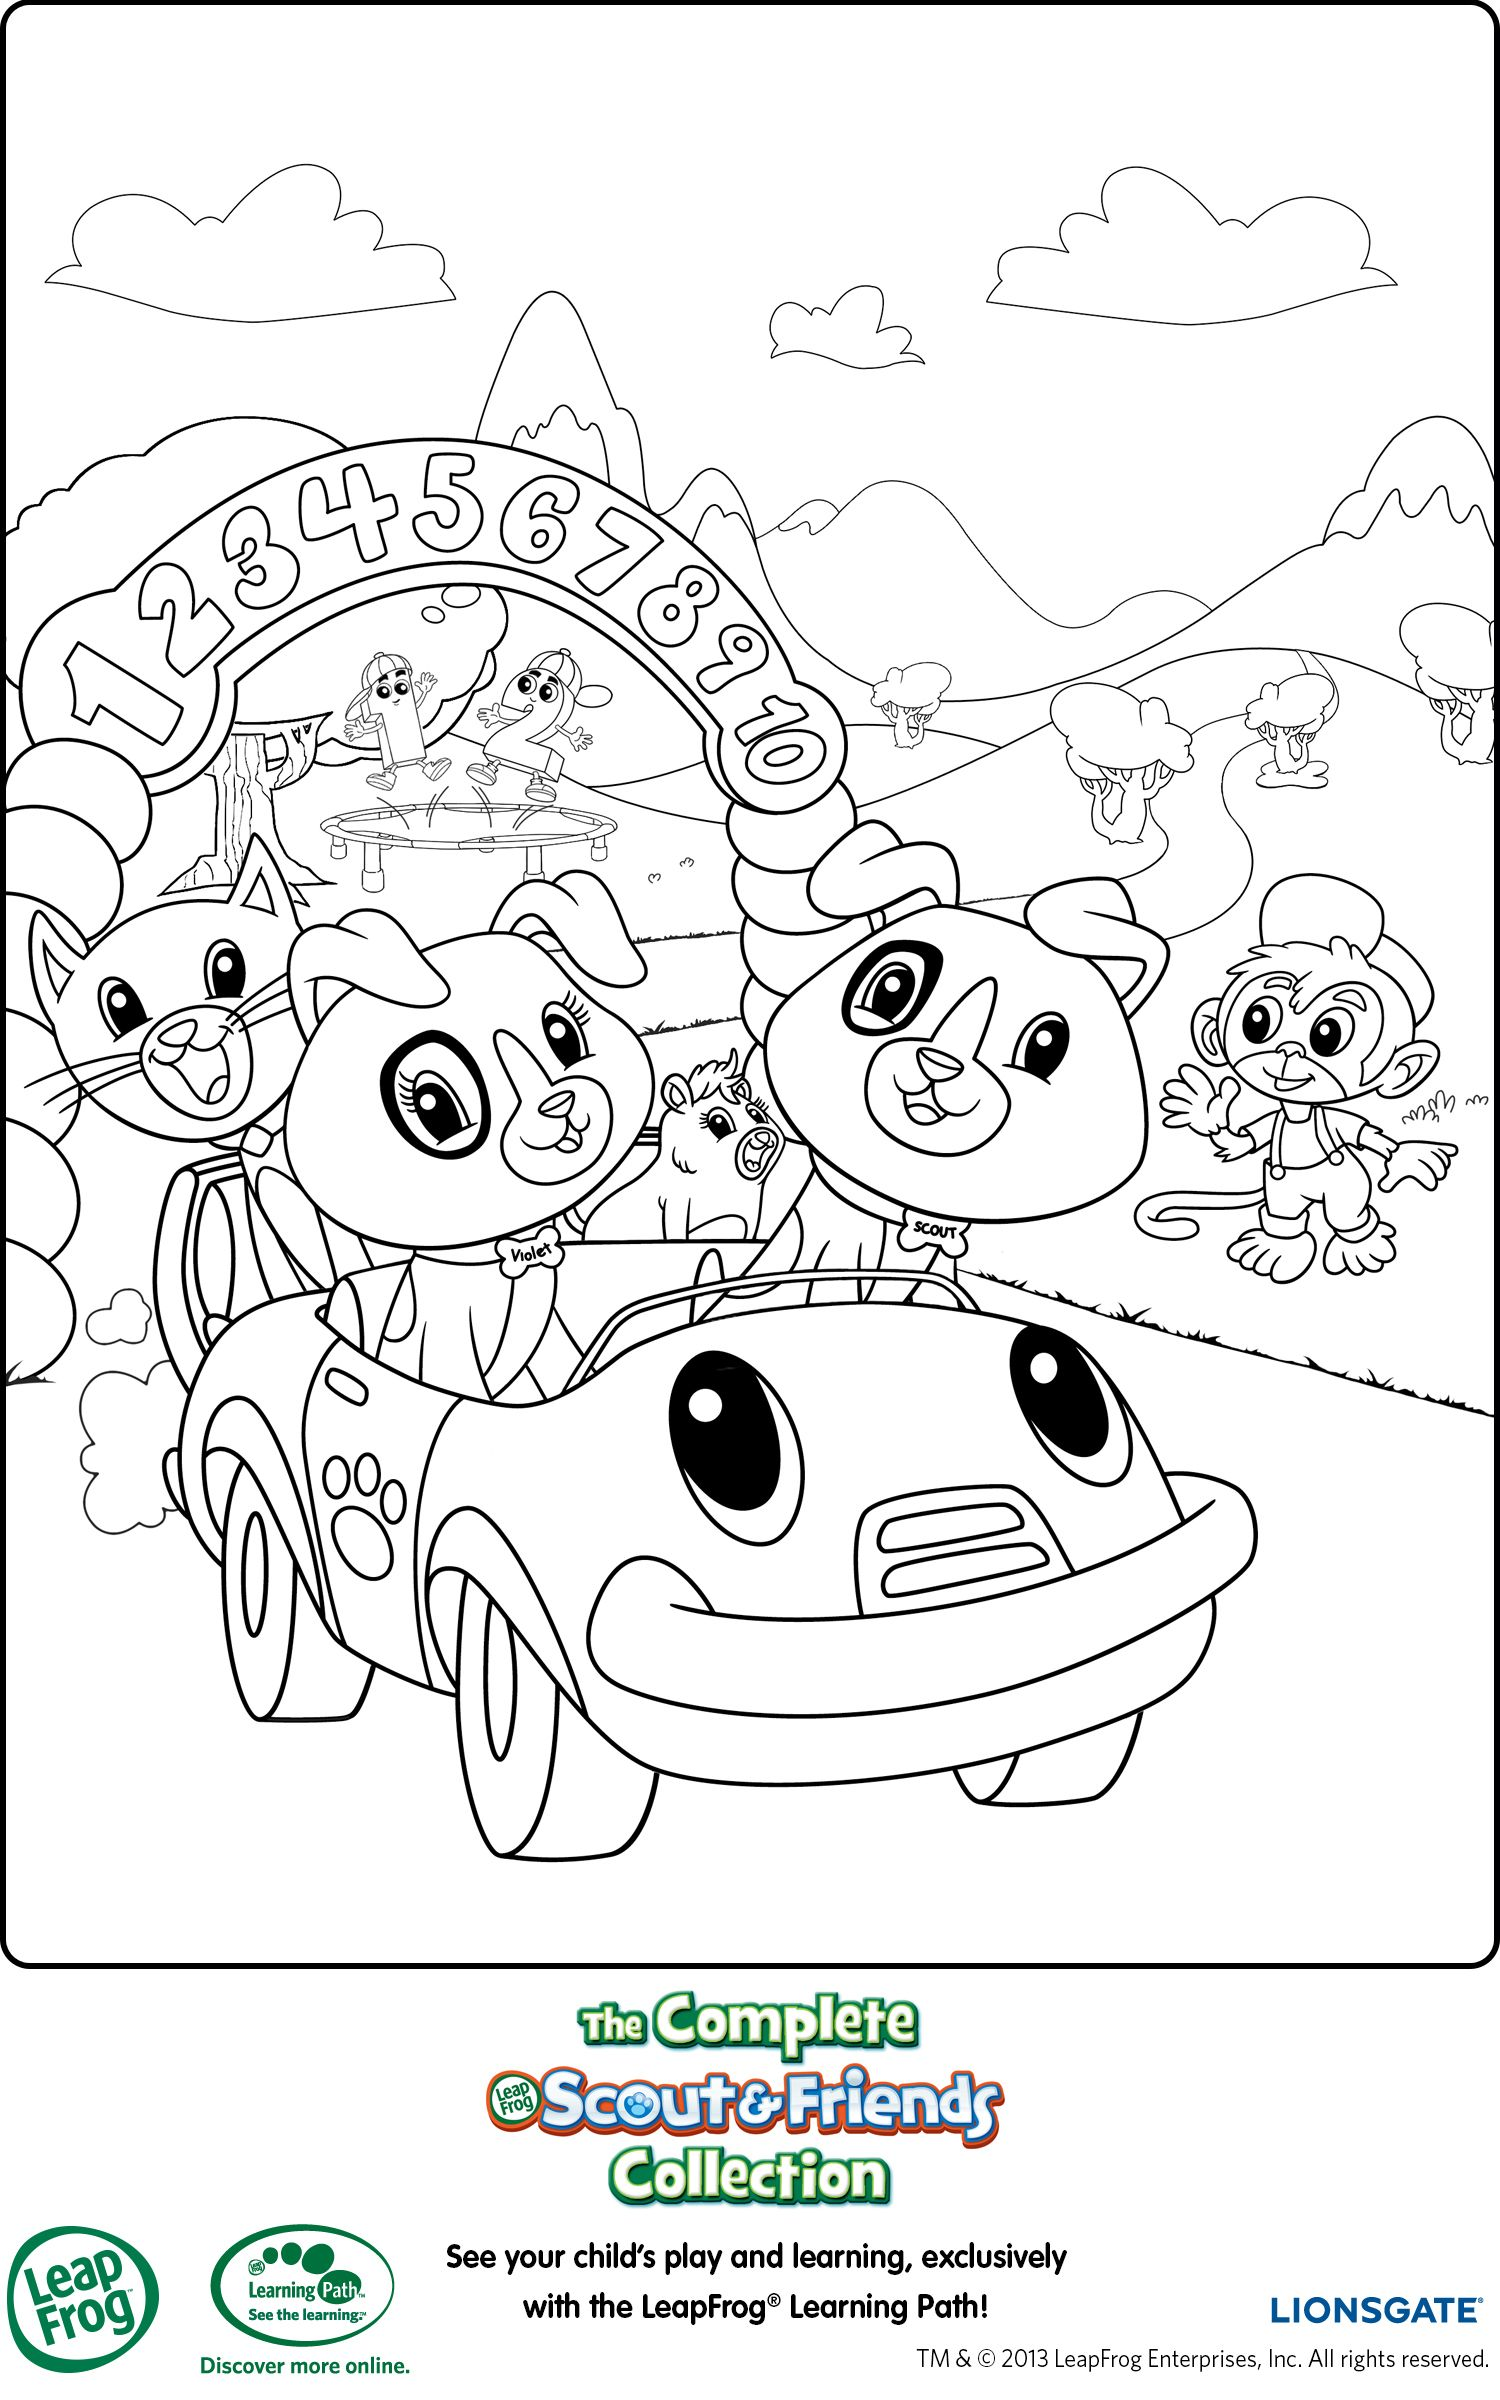 Leapfrog Printable Coloring Page Printable Coloring Pages Army Tank Happy Birthday Coloring Page